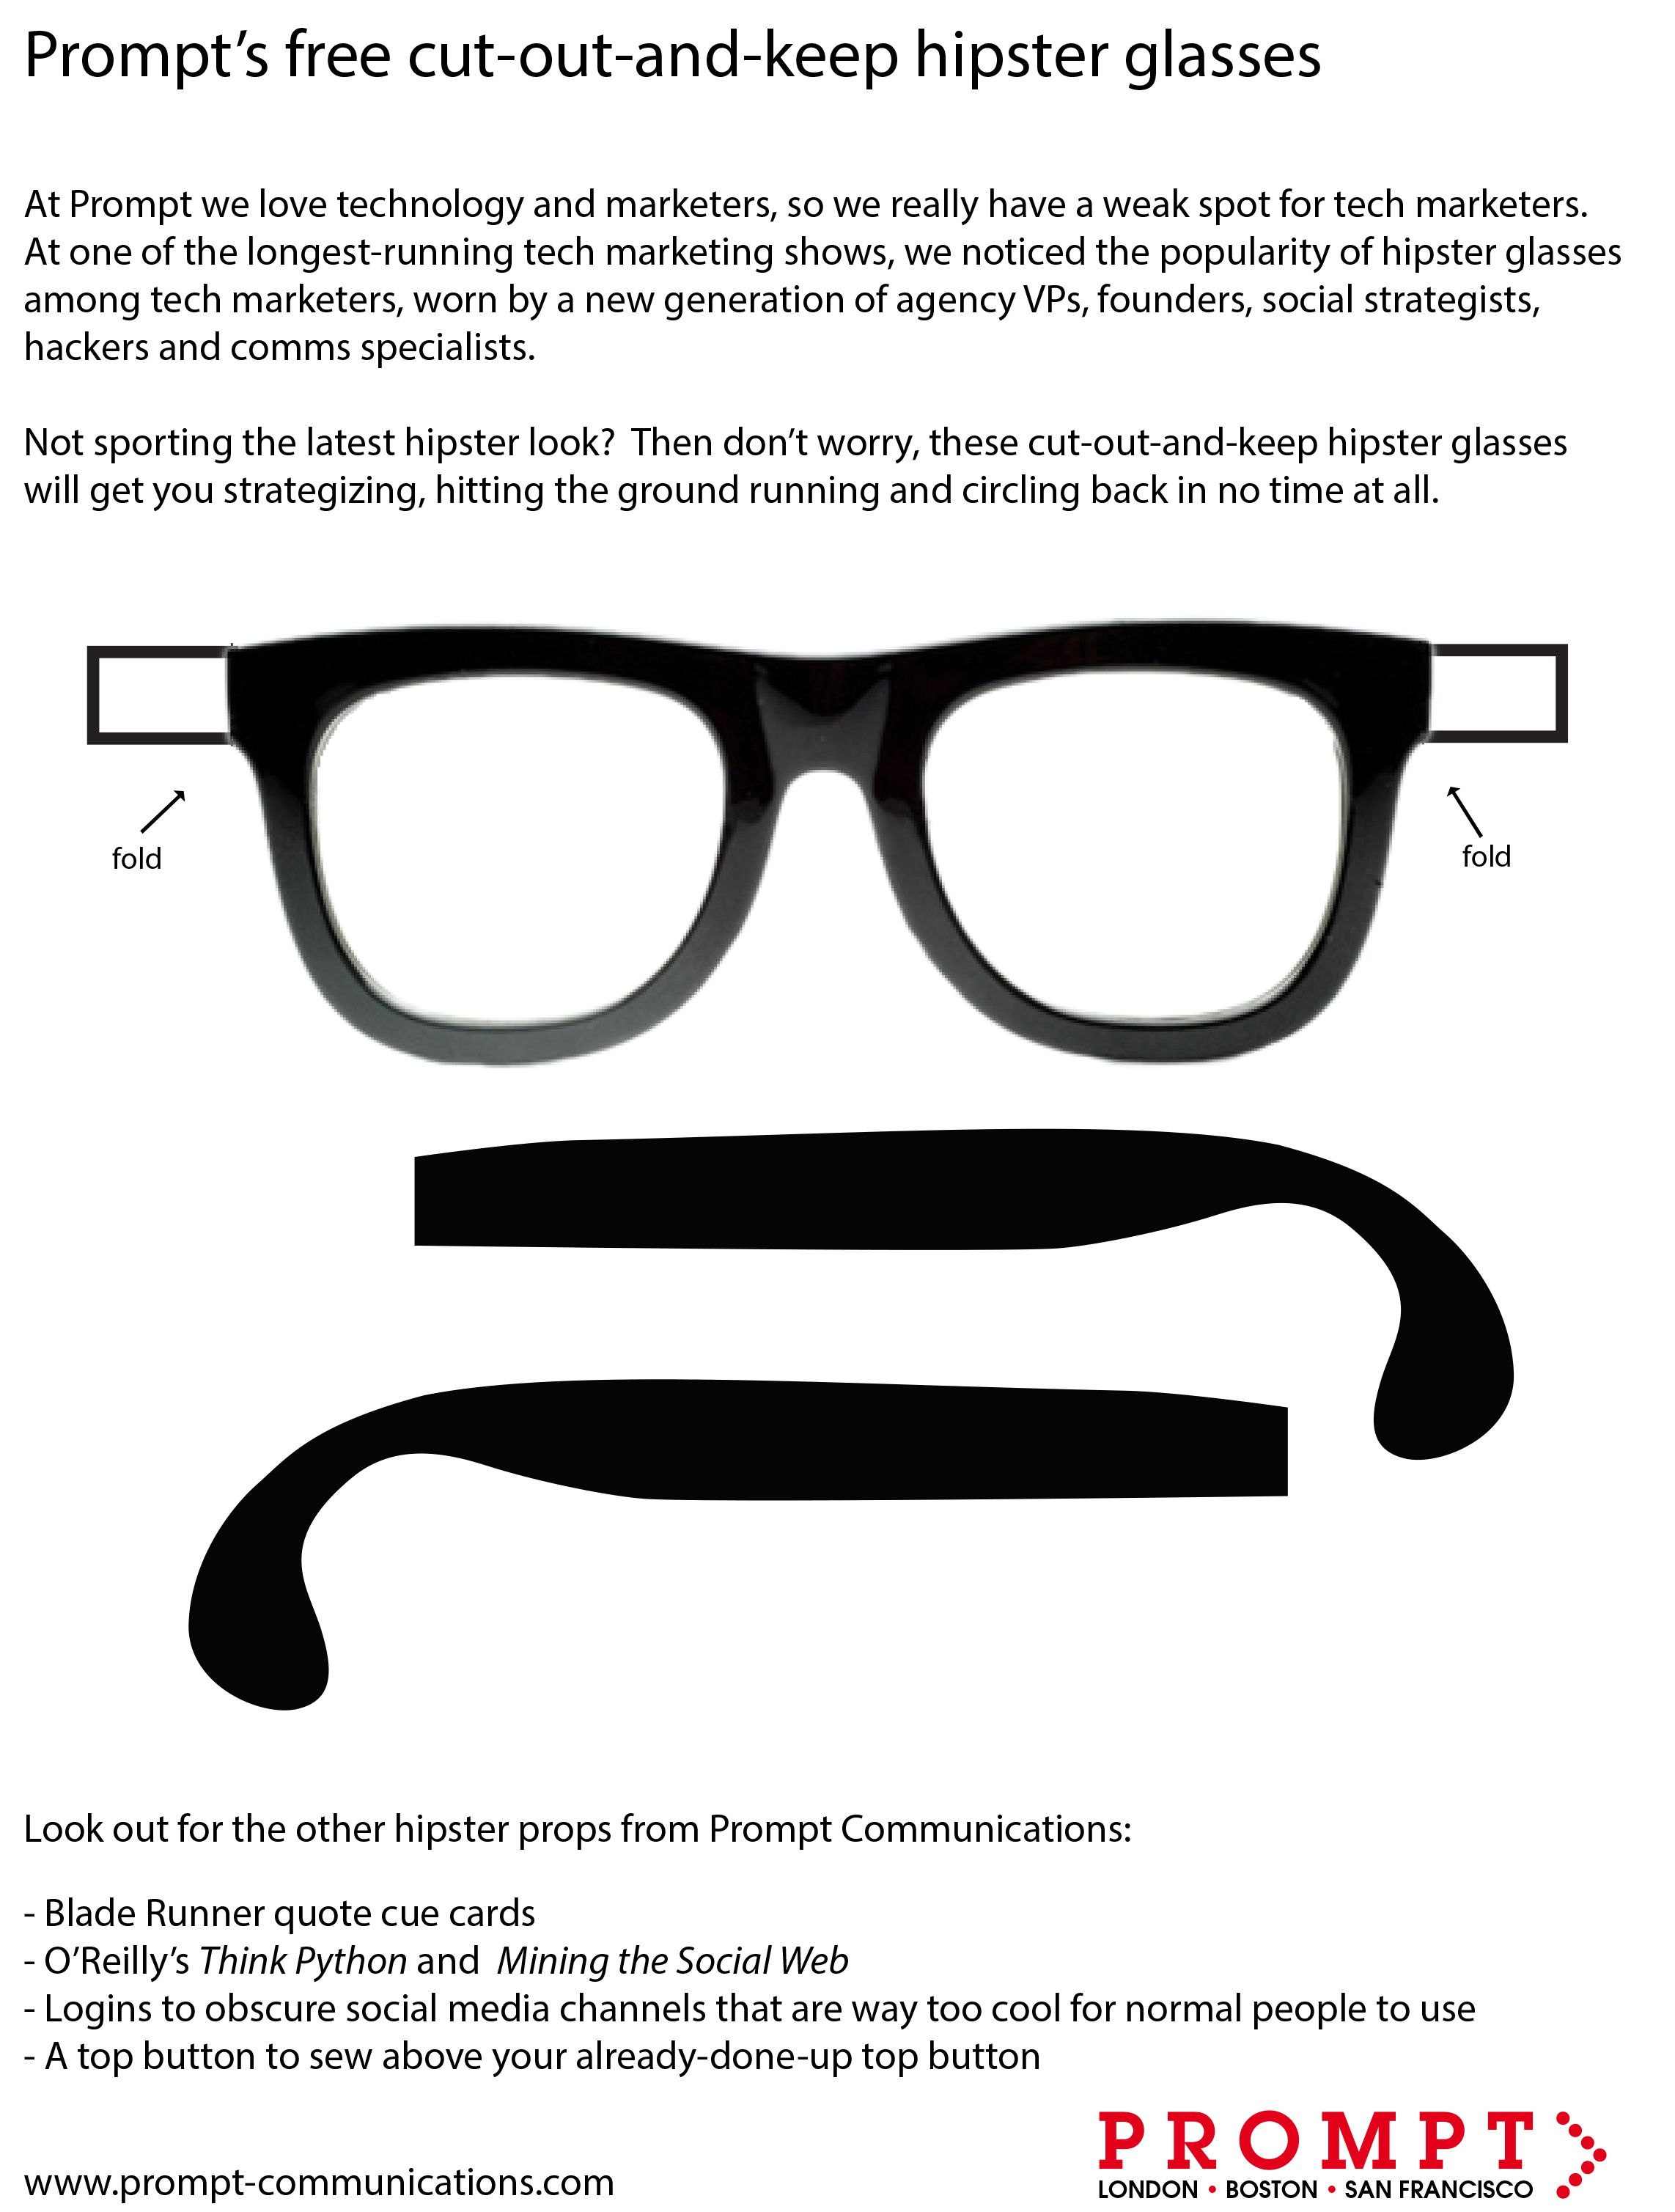 Magnificent 1099 Template Excel Small 1099 Template Word Square 2014 Monthly Calendar Templates 2015 Template Calendar Old 3d Animator Resume Templates Fresh3d Character Modeler Resume Glasses Printable | Printable Eyeglasses Template To Print, Cut ..